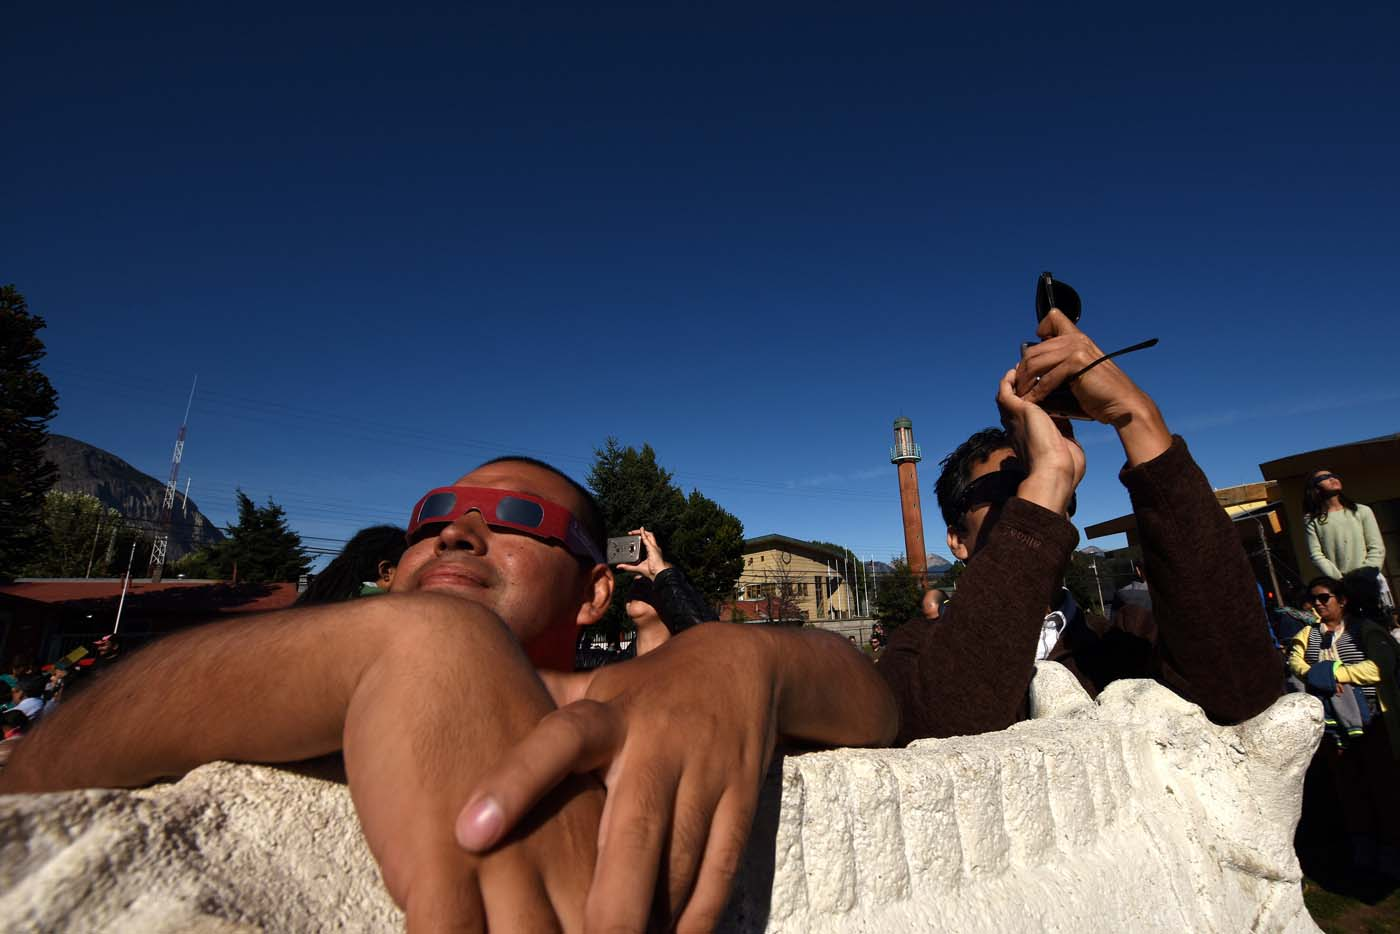 People observe a solar eclipse in Coyhaique, Chile February 26, 2017. REUTERS/Stringer EDITORIAL USE ONLY. NO RESALES. NO ARCHIVE